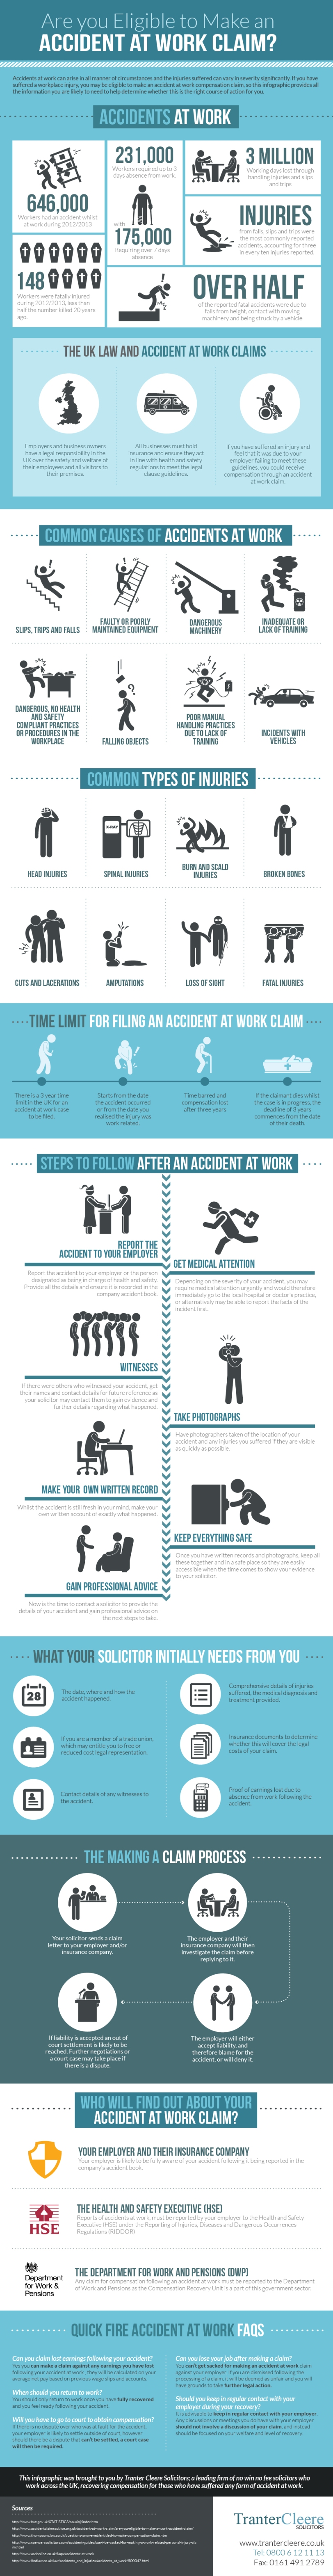 Accident-at-Work-Claim-Infographic